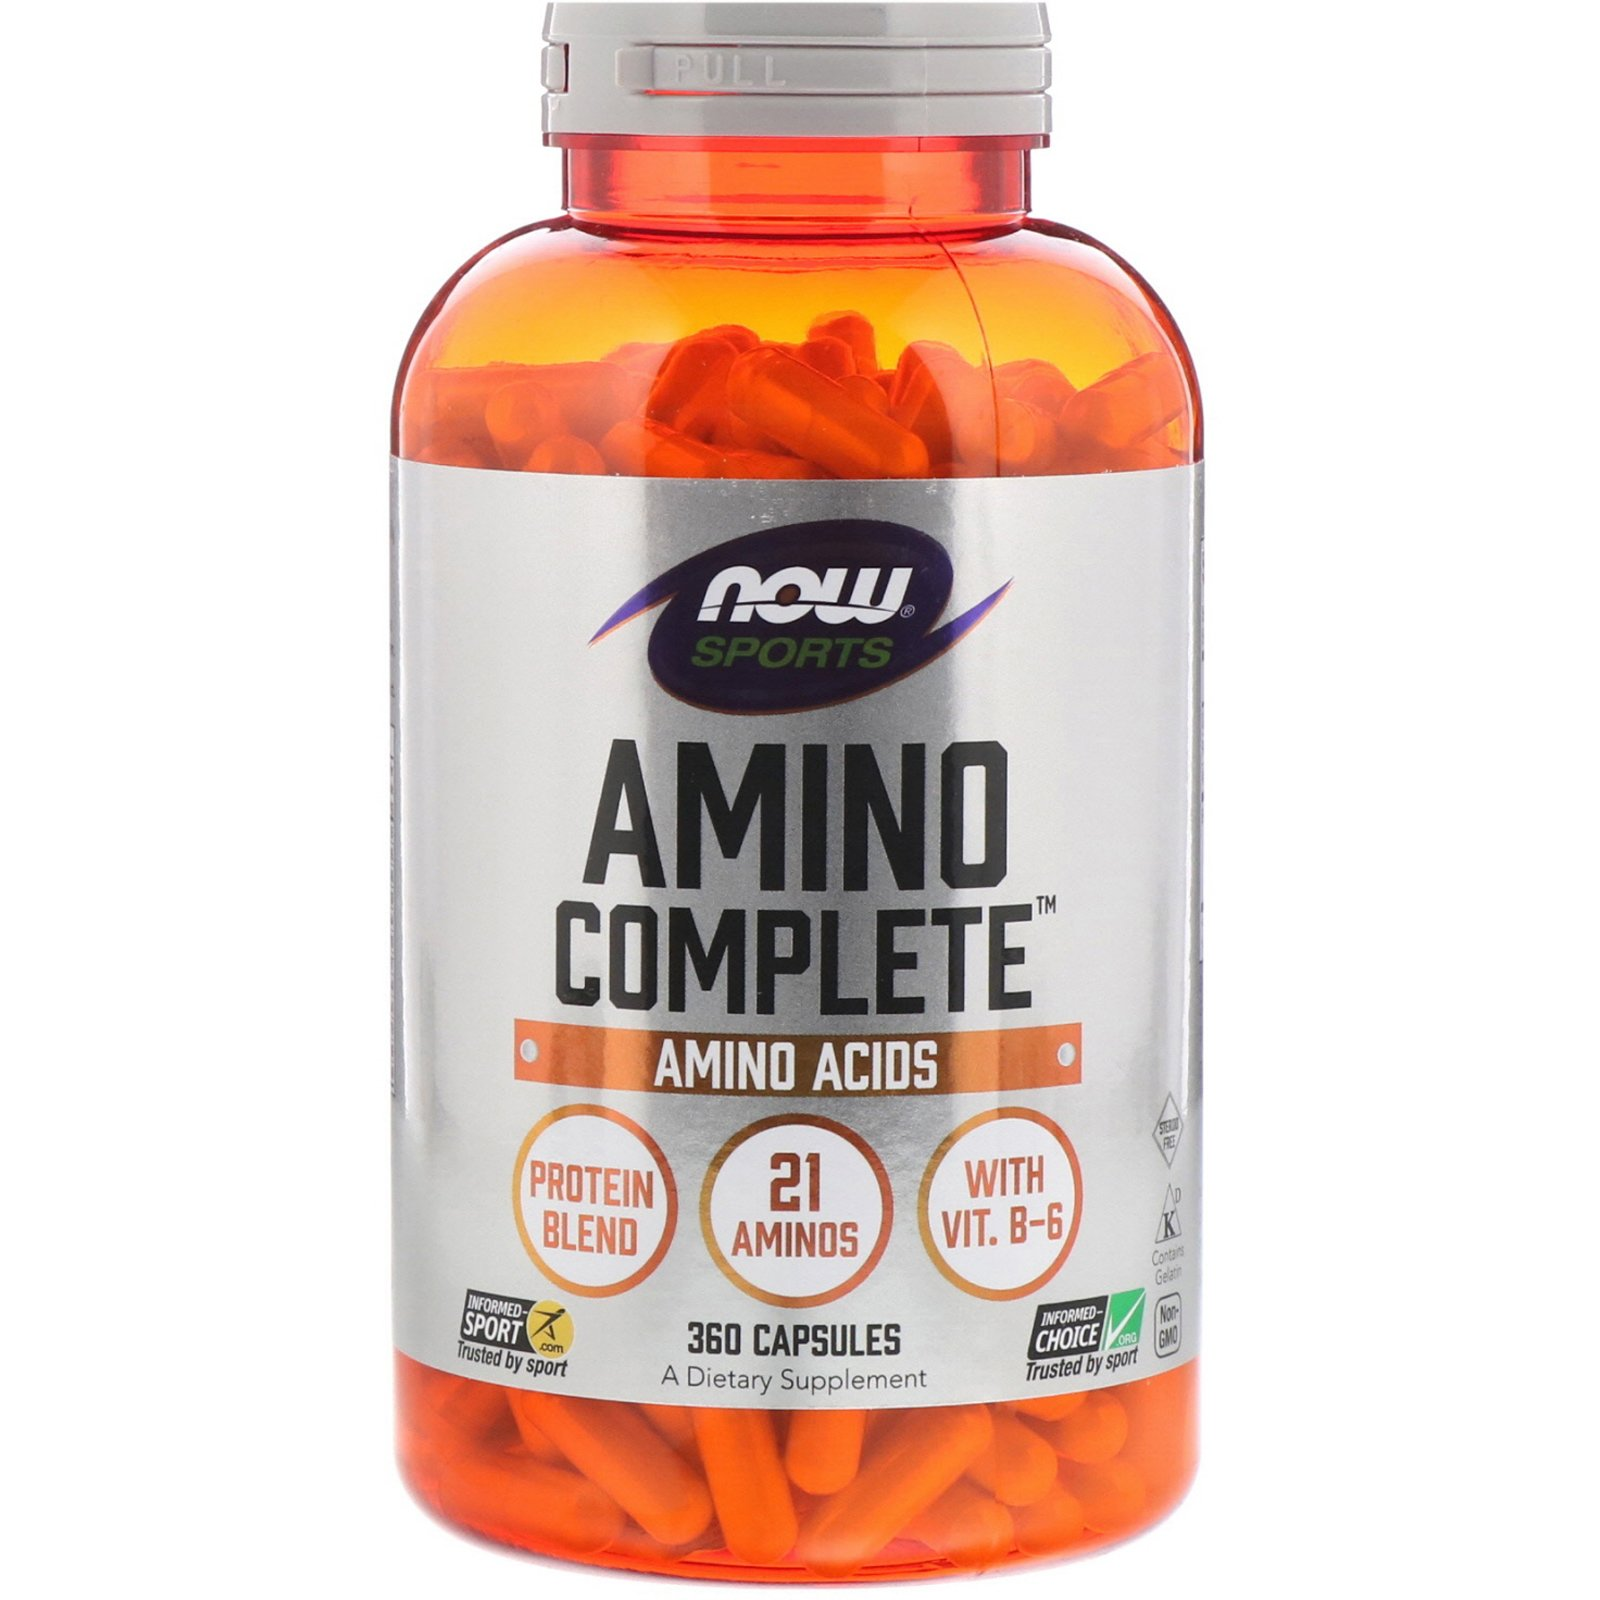 Аміно комплекс, Amino Complete, Now Foods, Sports, 360 капсул